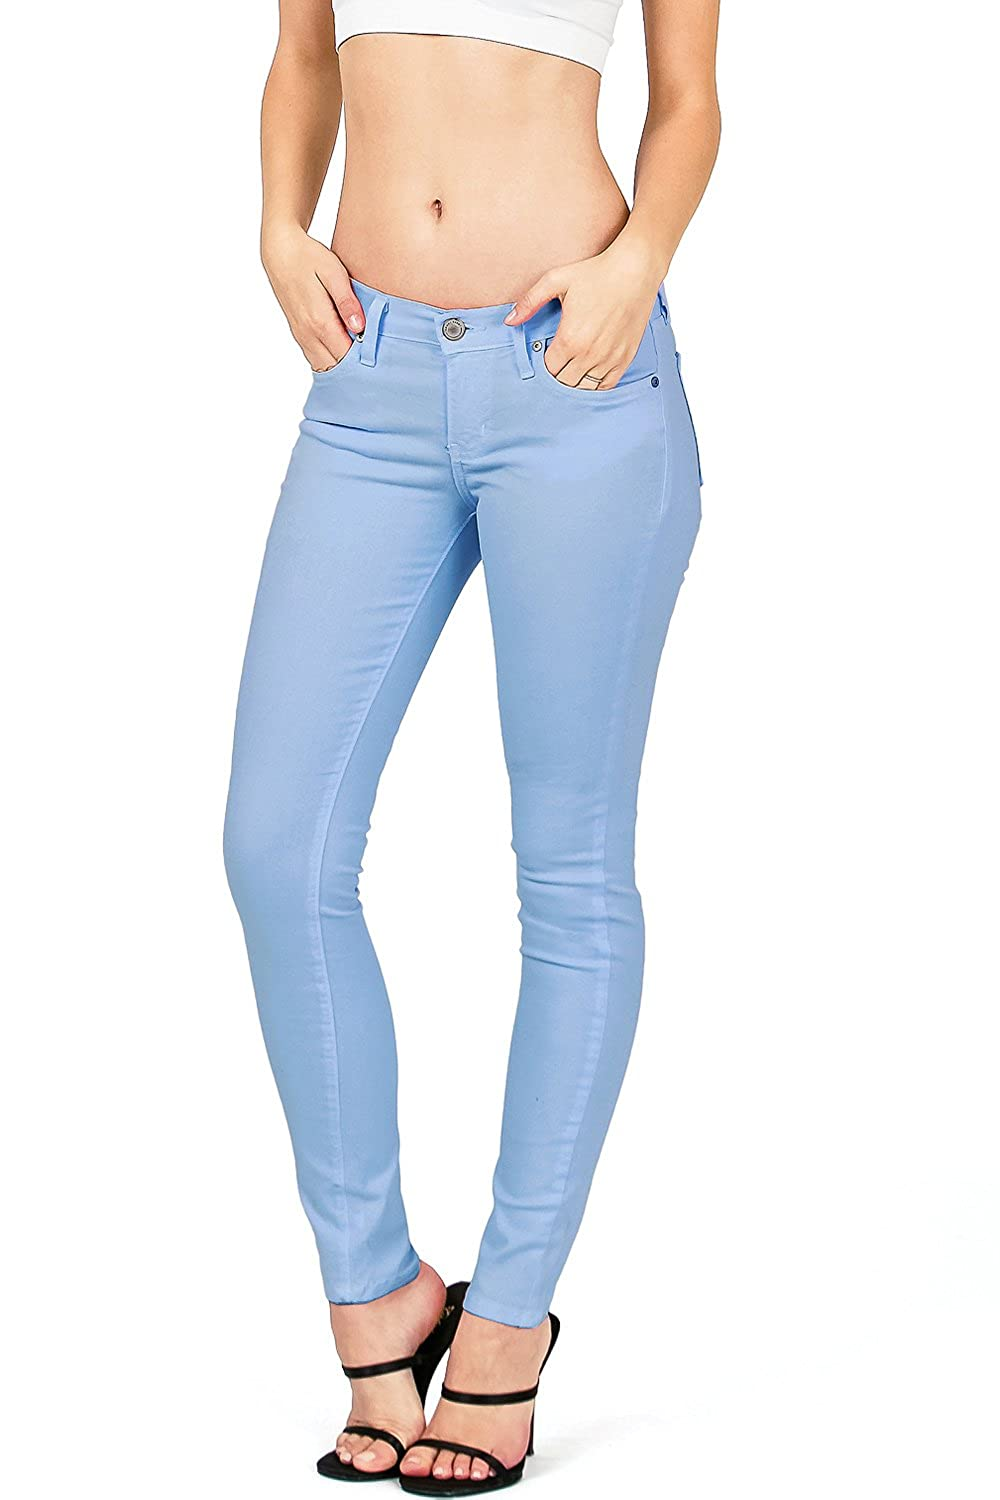 bluee Angry Rabbit by Pink Ice Women's Juniors Mid Waist Skinny colord Jeans